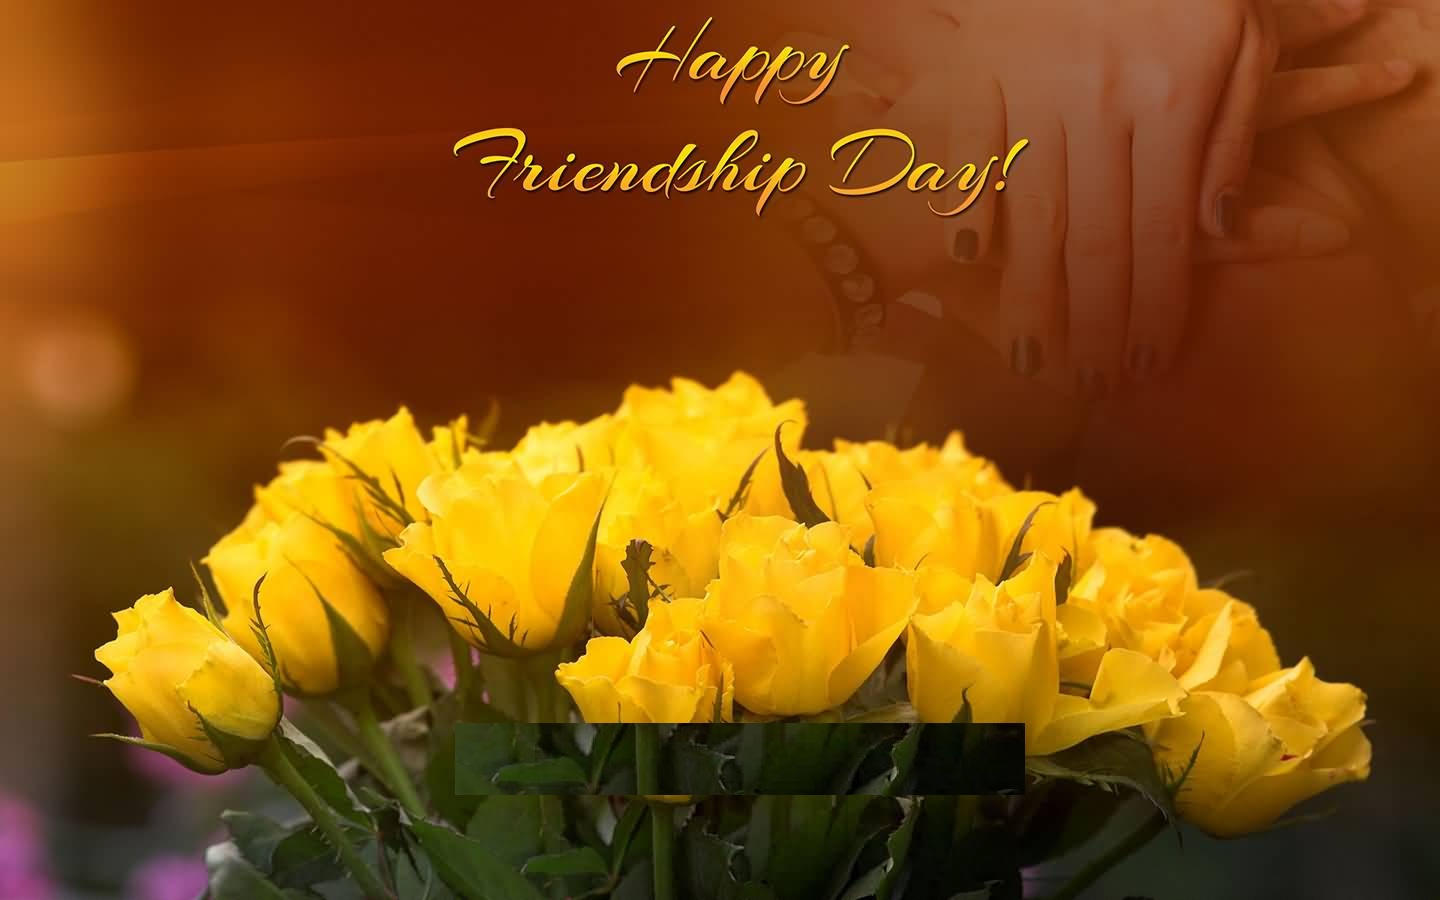 Yellow rose friendship clipart jpg free download Happy Friendship Day Yellow Rose Photo - Free Printable ... jpg free download